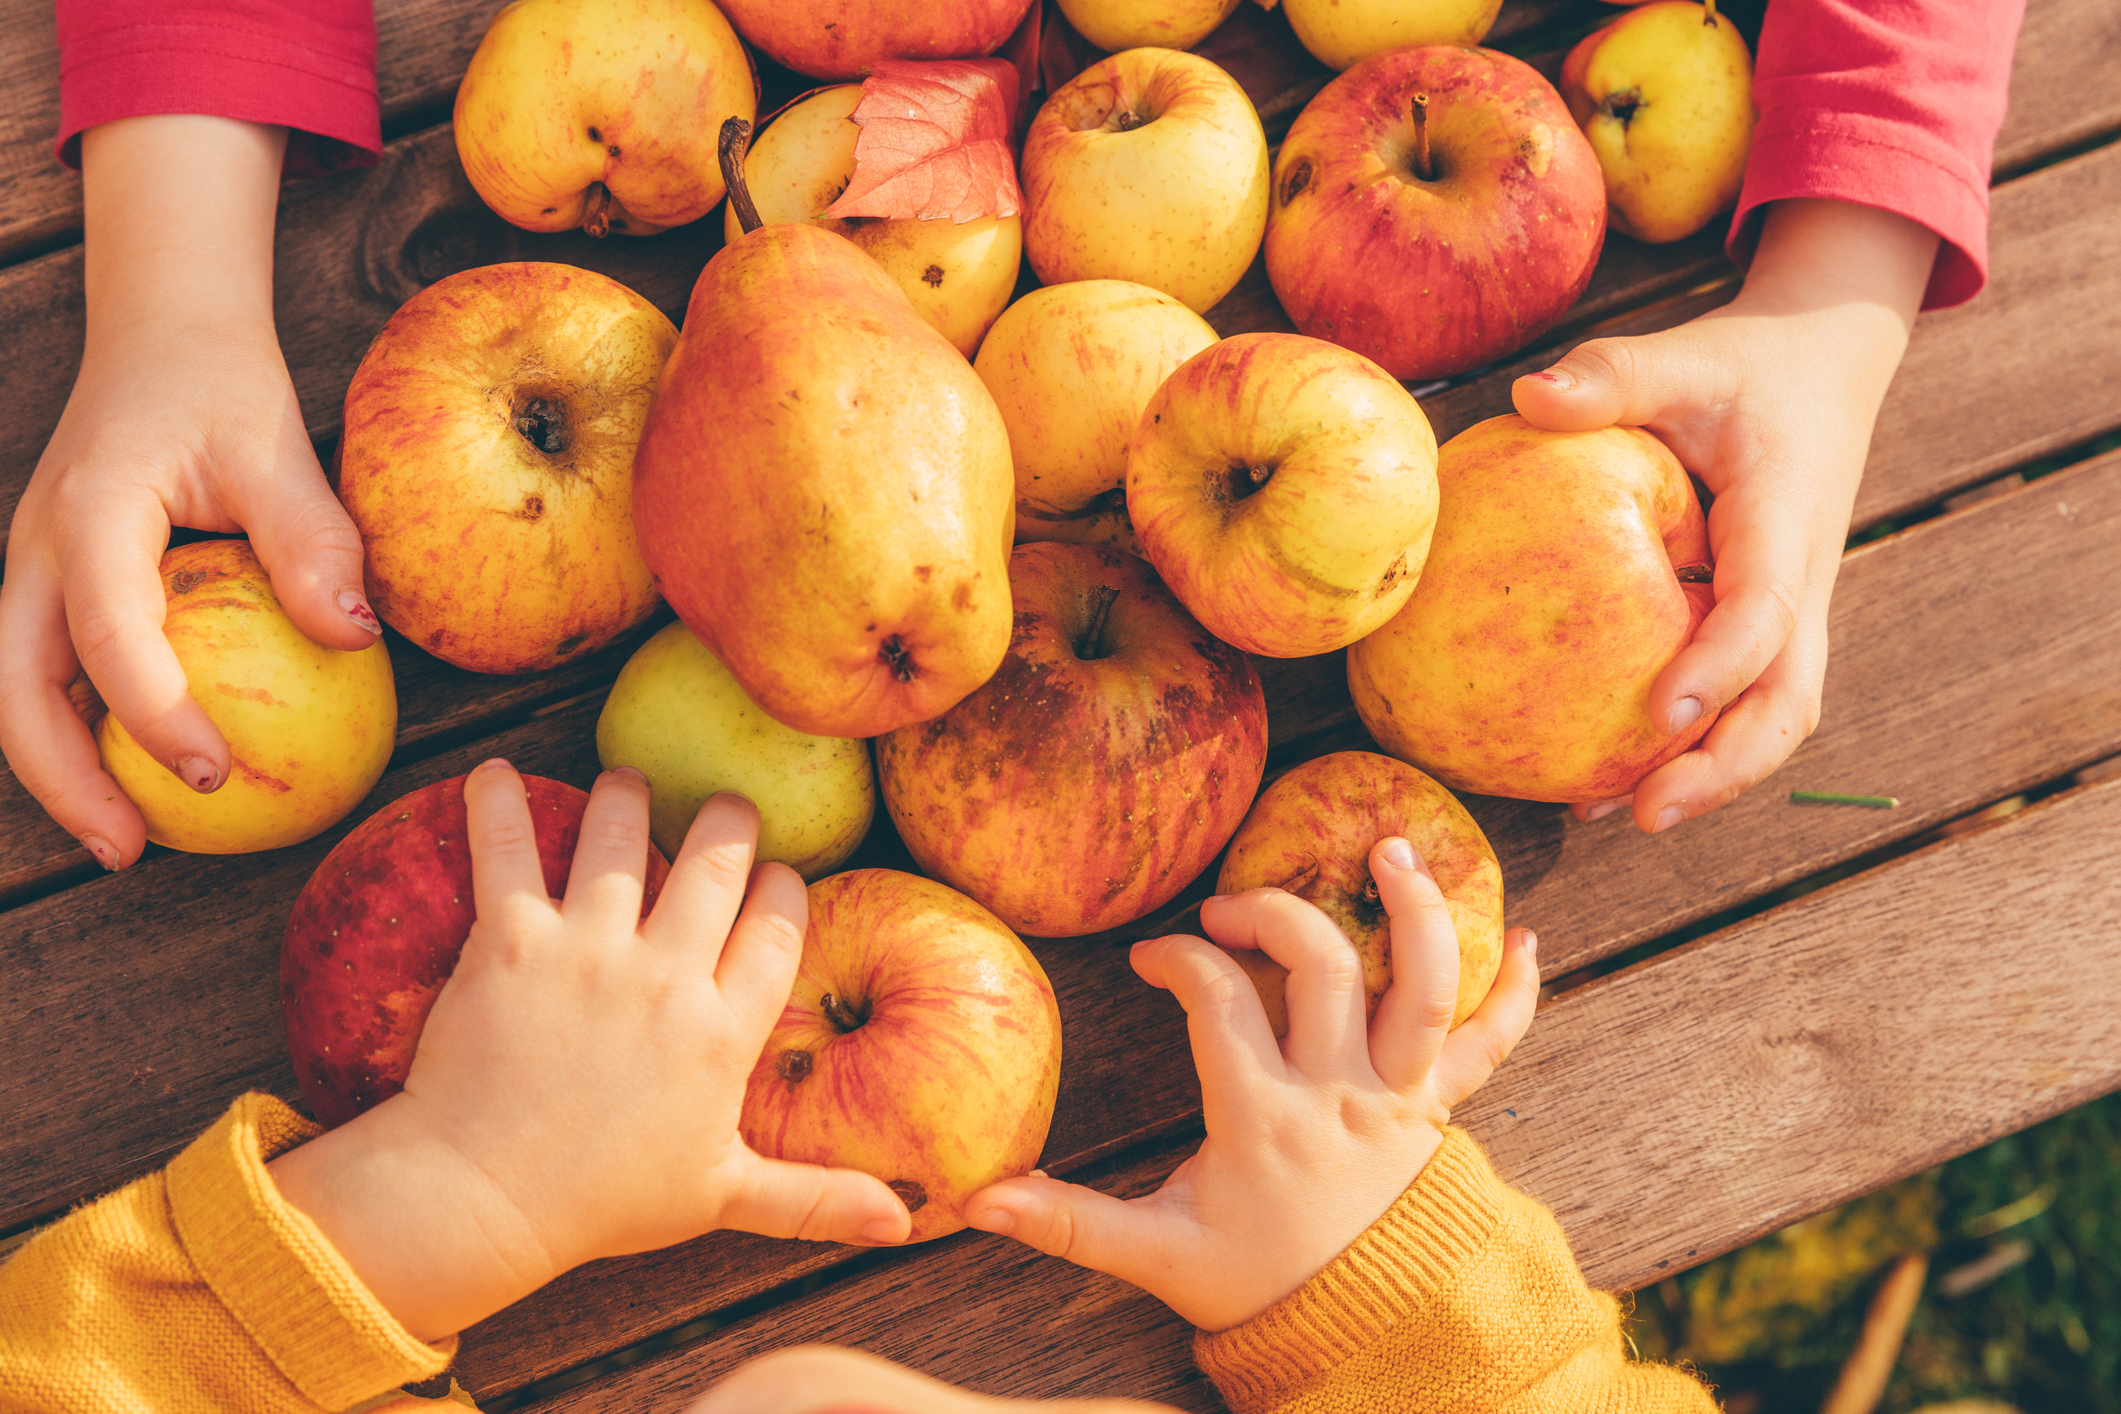 kids reaching for apples and pears